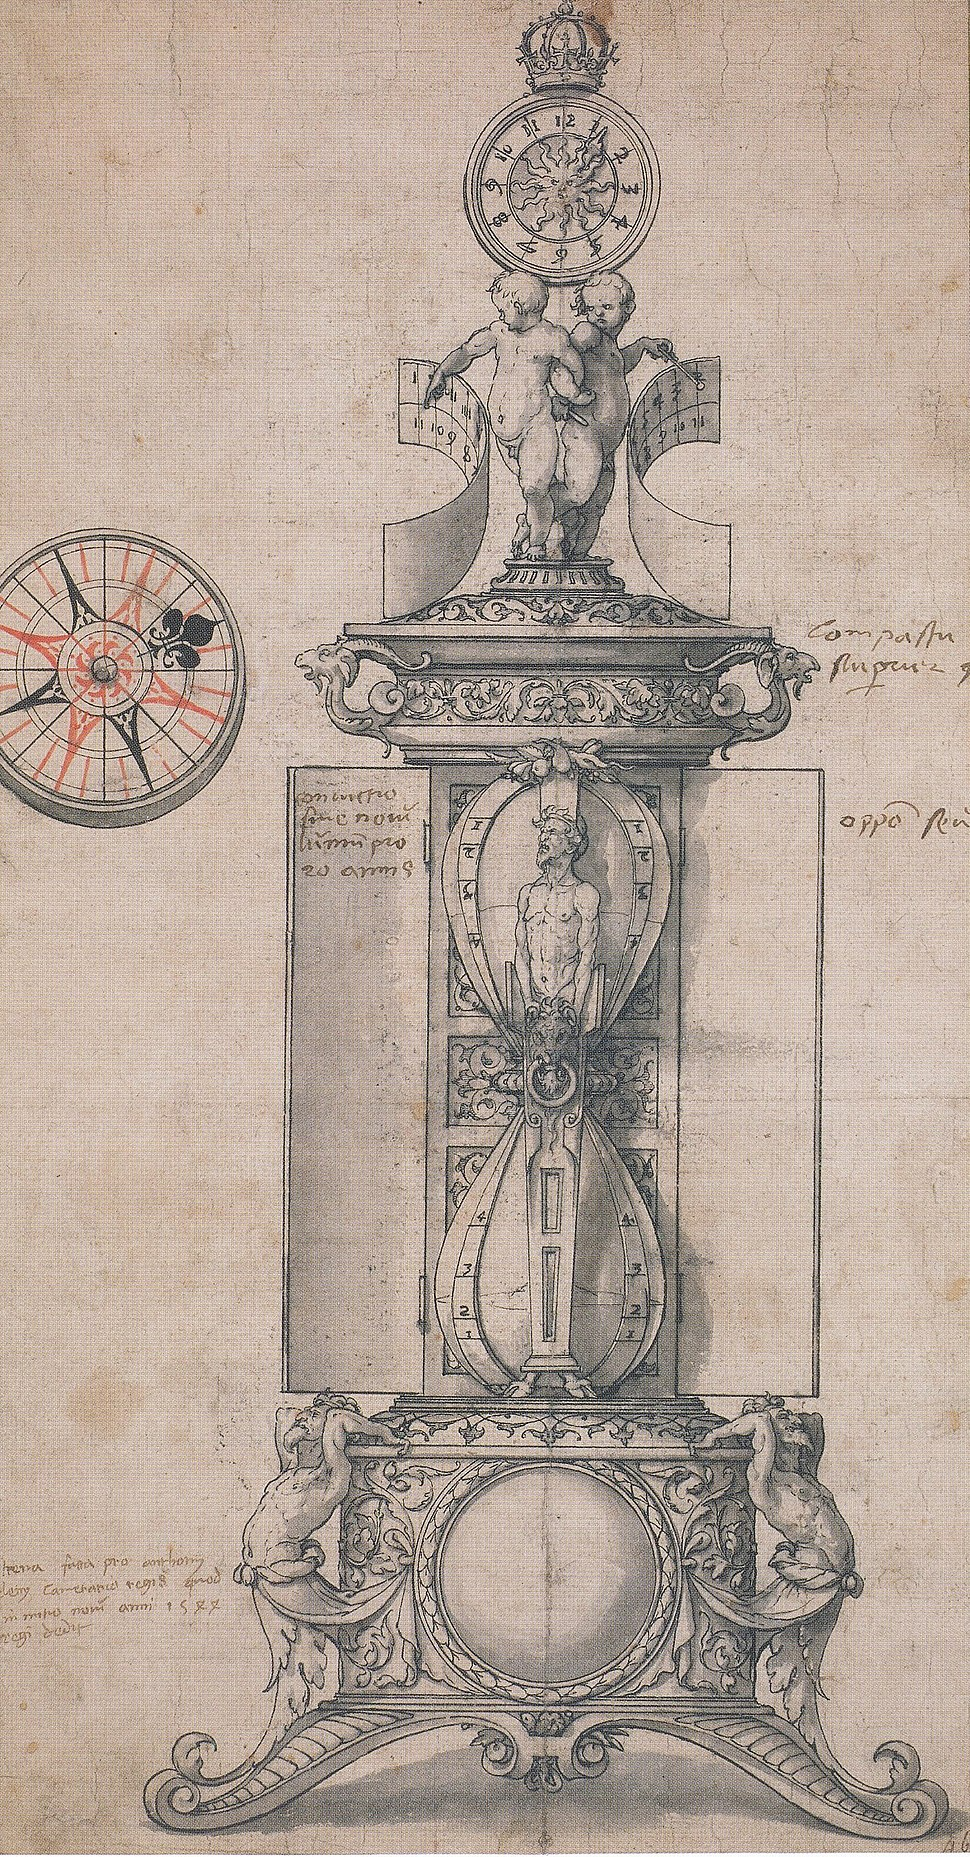 Astronomical clock, design by Hans Holbein the Younger